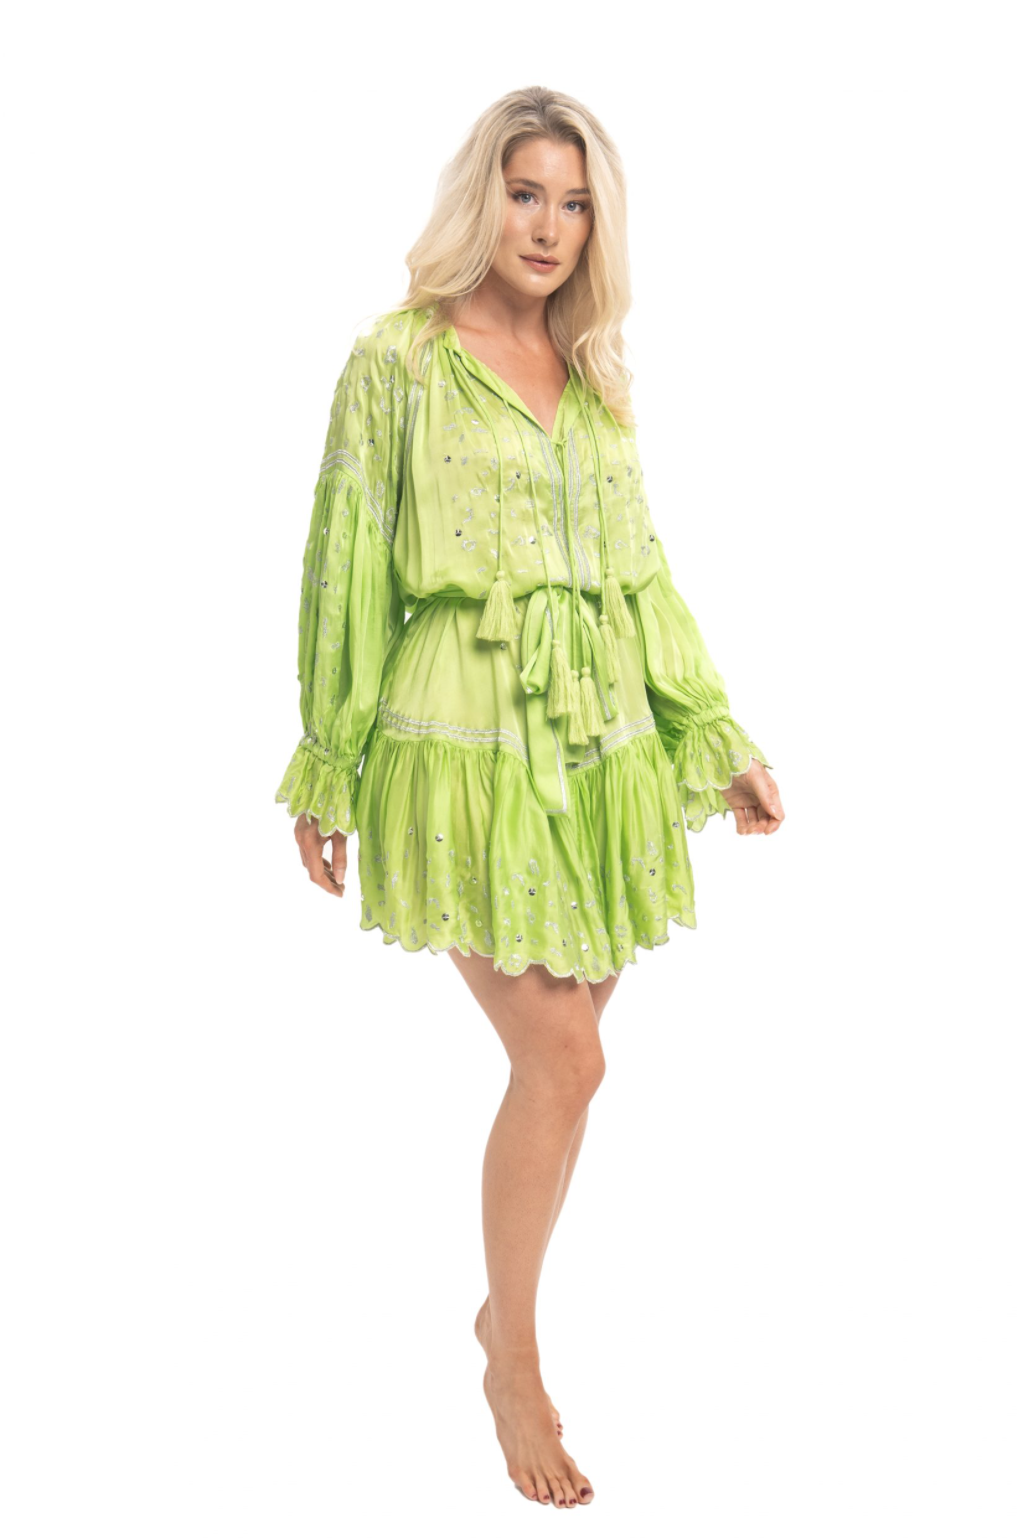 Silky Dress Preen in Neon Lime & Silver leopard Print